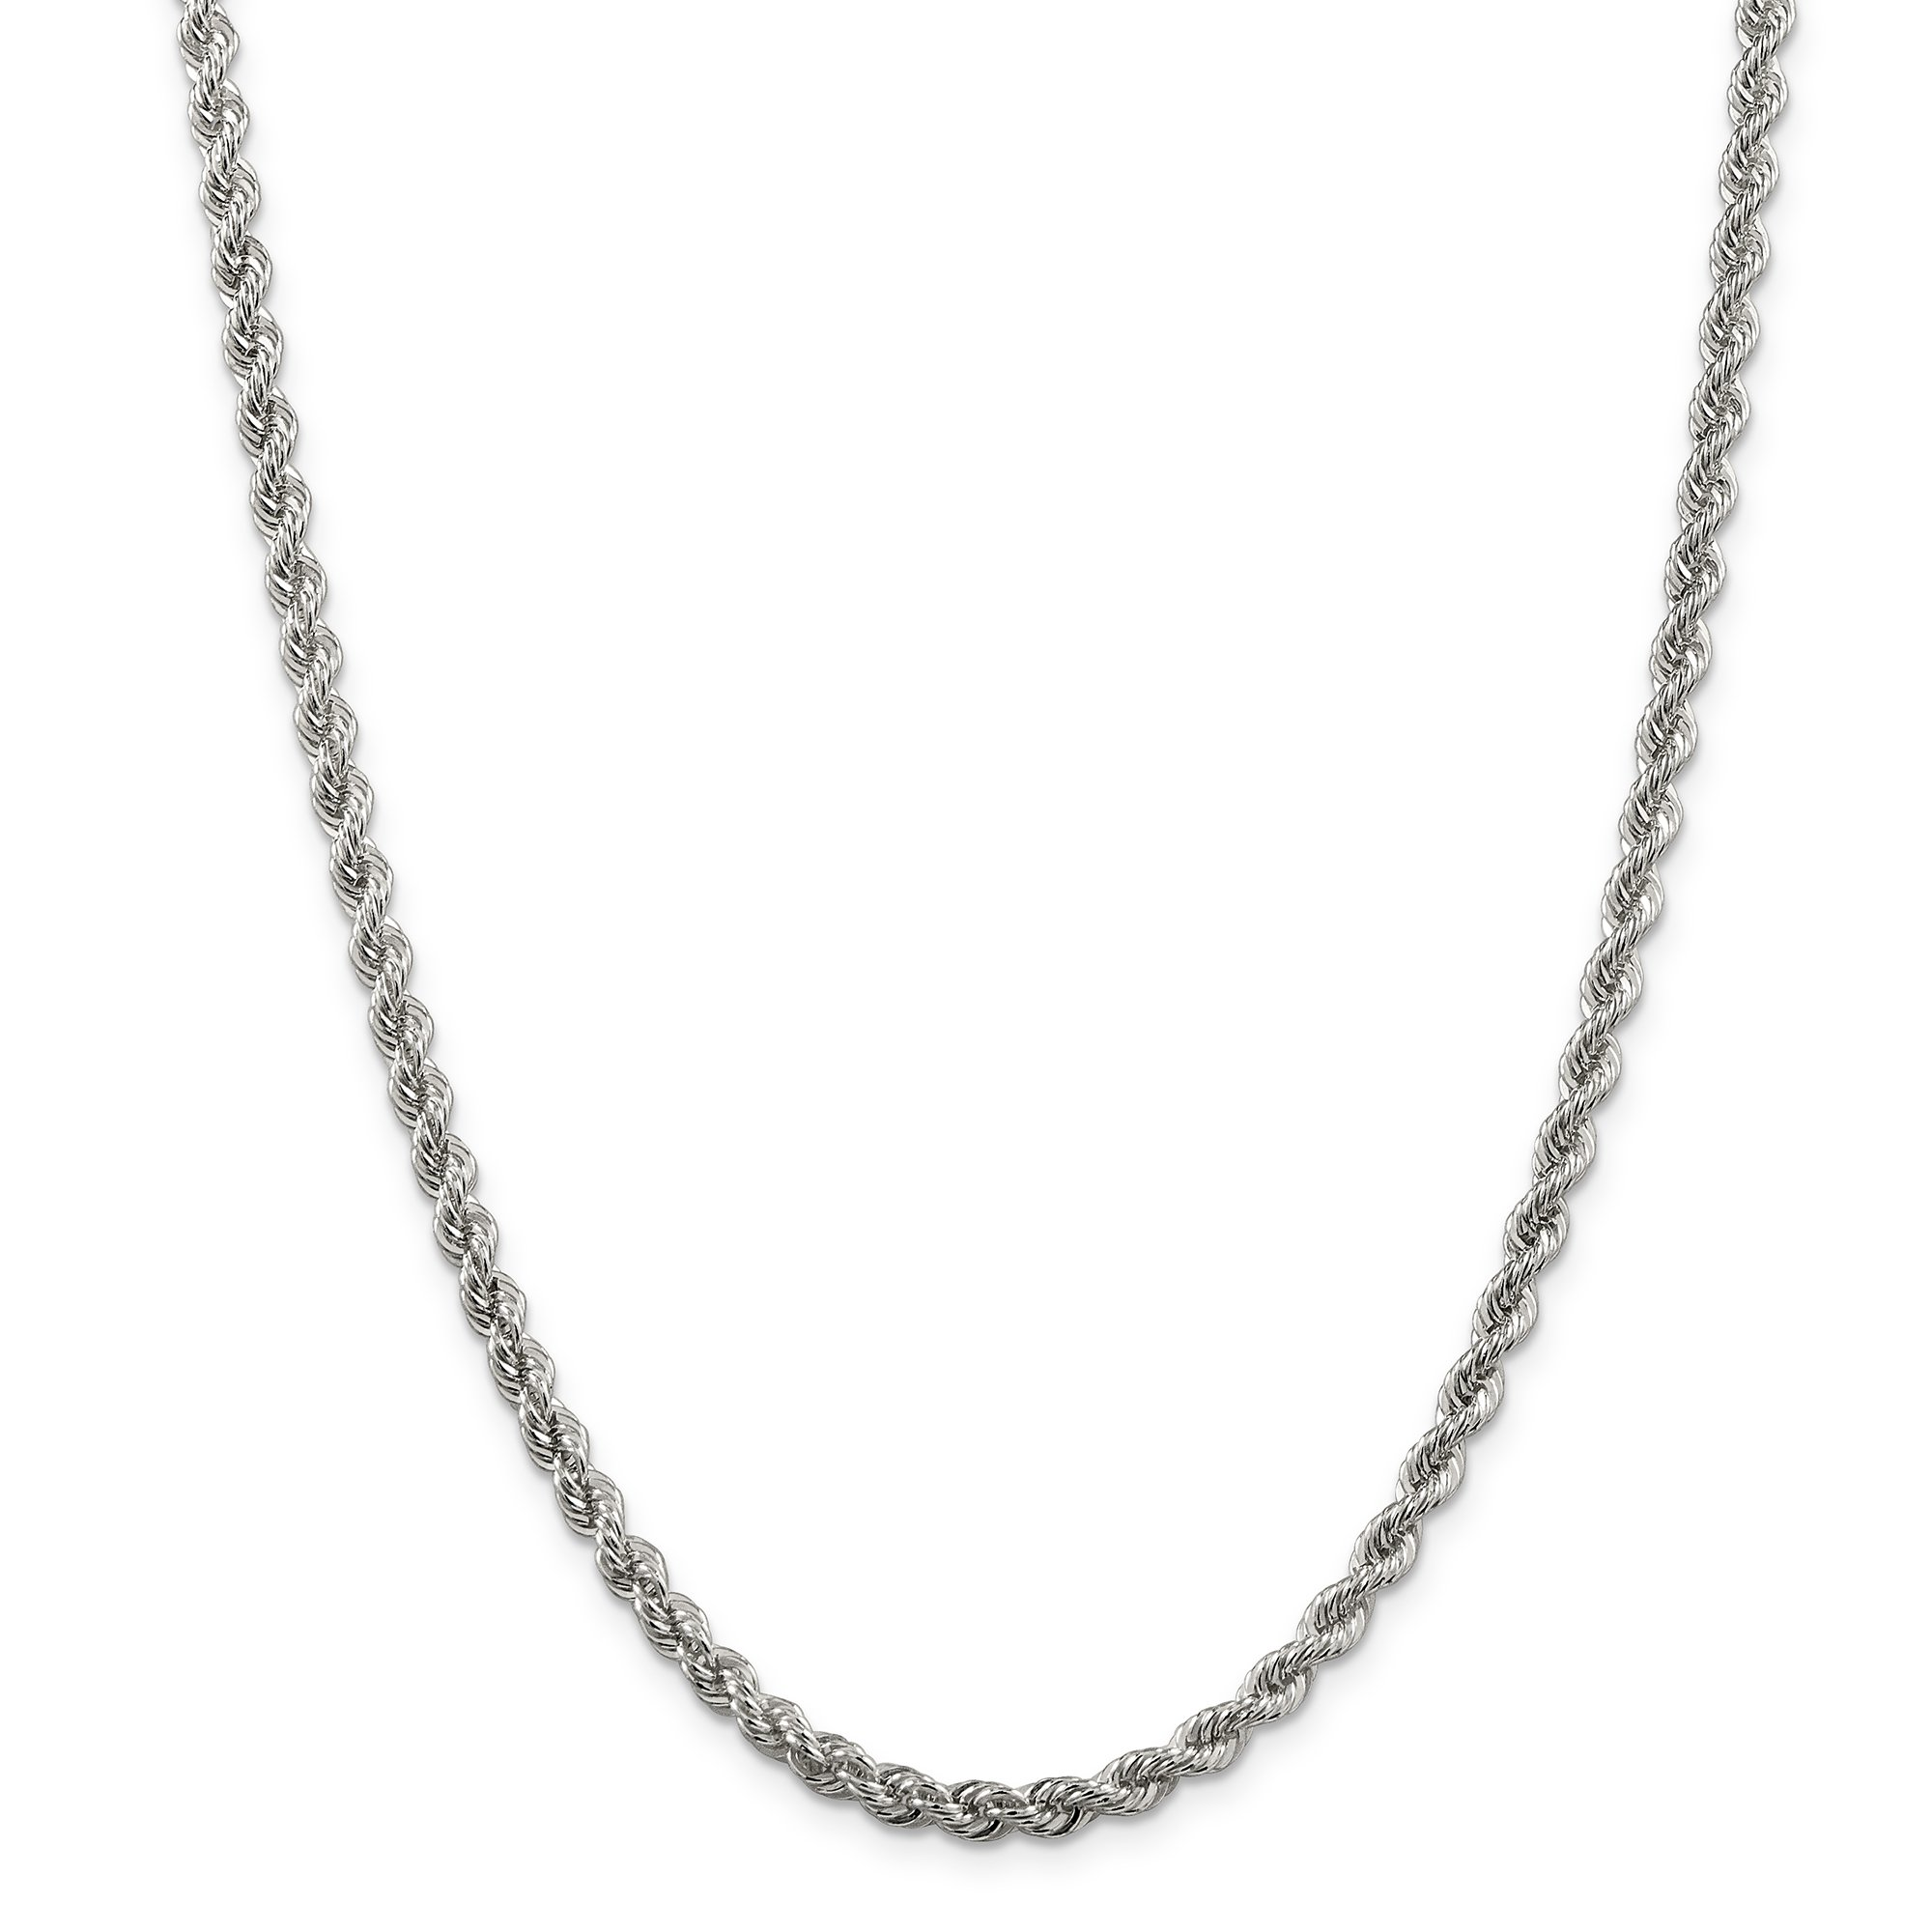 ICE CARATS 925 Sterling Silver 4.5mm Solid Link Rope Chain Necklace 22 Inch Regular Fine Jewelry Gift Set For Women Heart